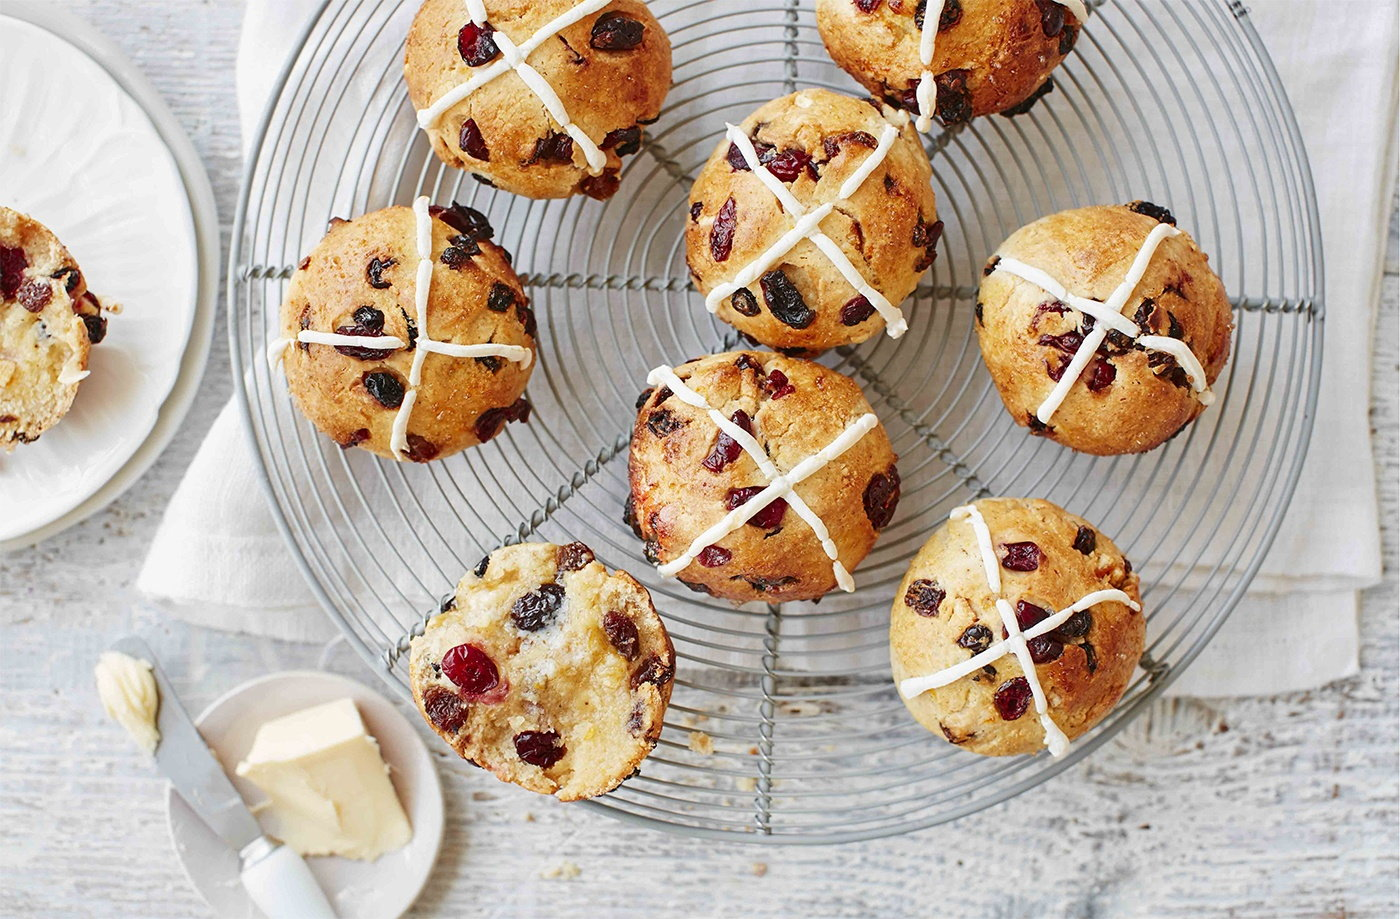 A traditional Easter treat, these easy gluten-free hot cross buns can be made in under an hour and make a delicious treat to share with the whole family